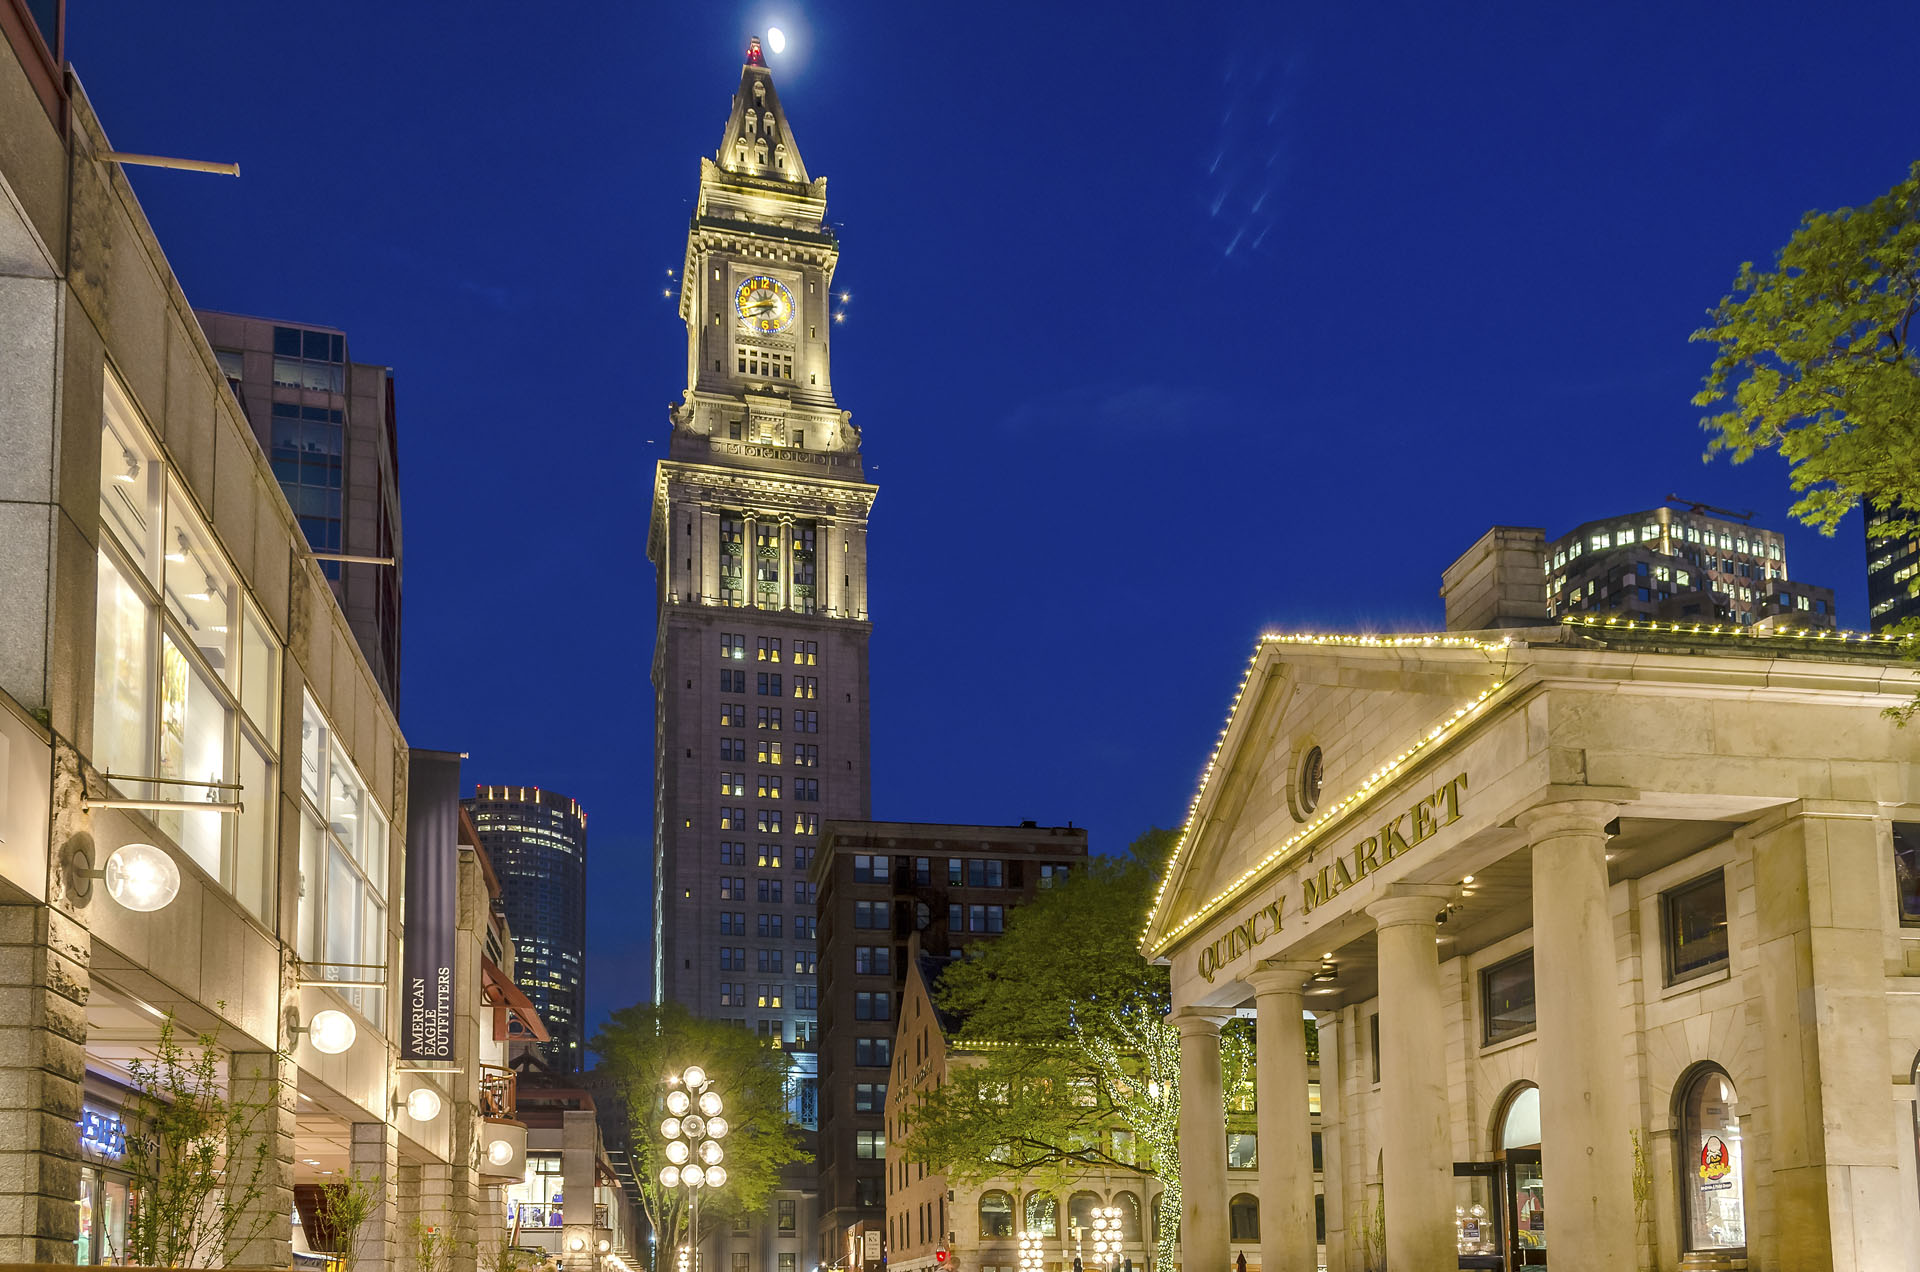 Custom House Tower and Quincy Market at night, Boston, USA